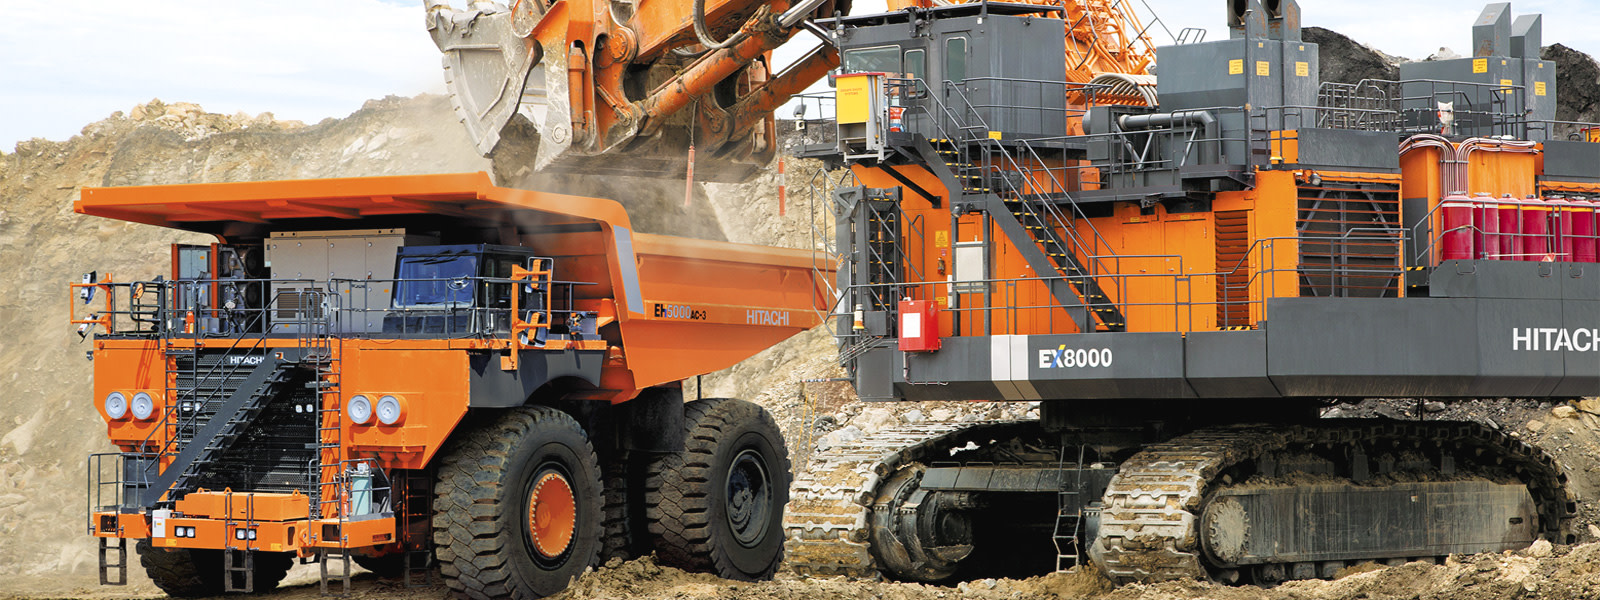 Hitachi Mining Excavators & Shovels